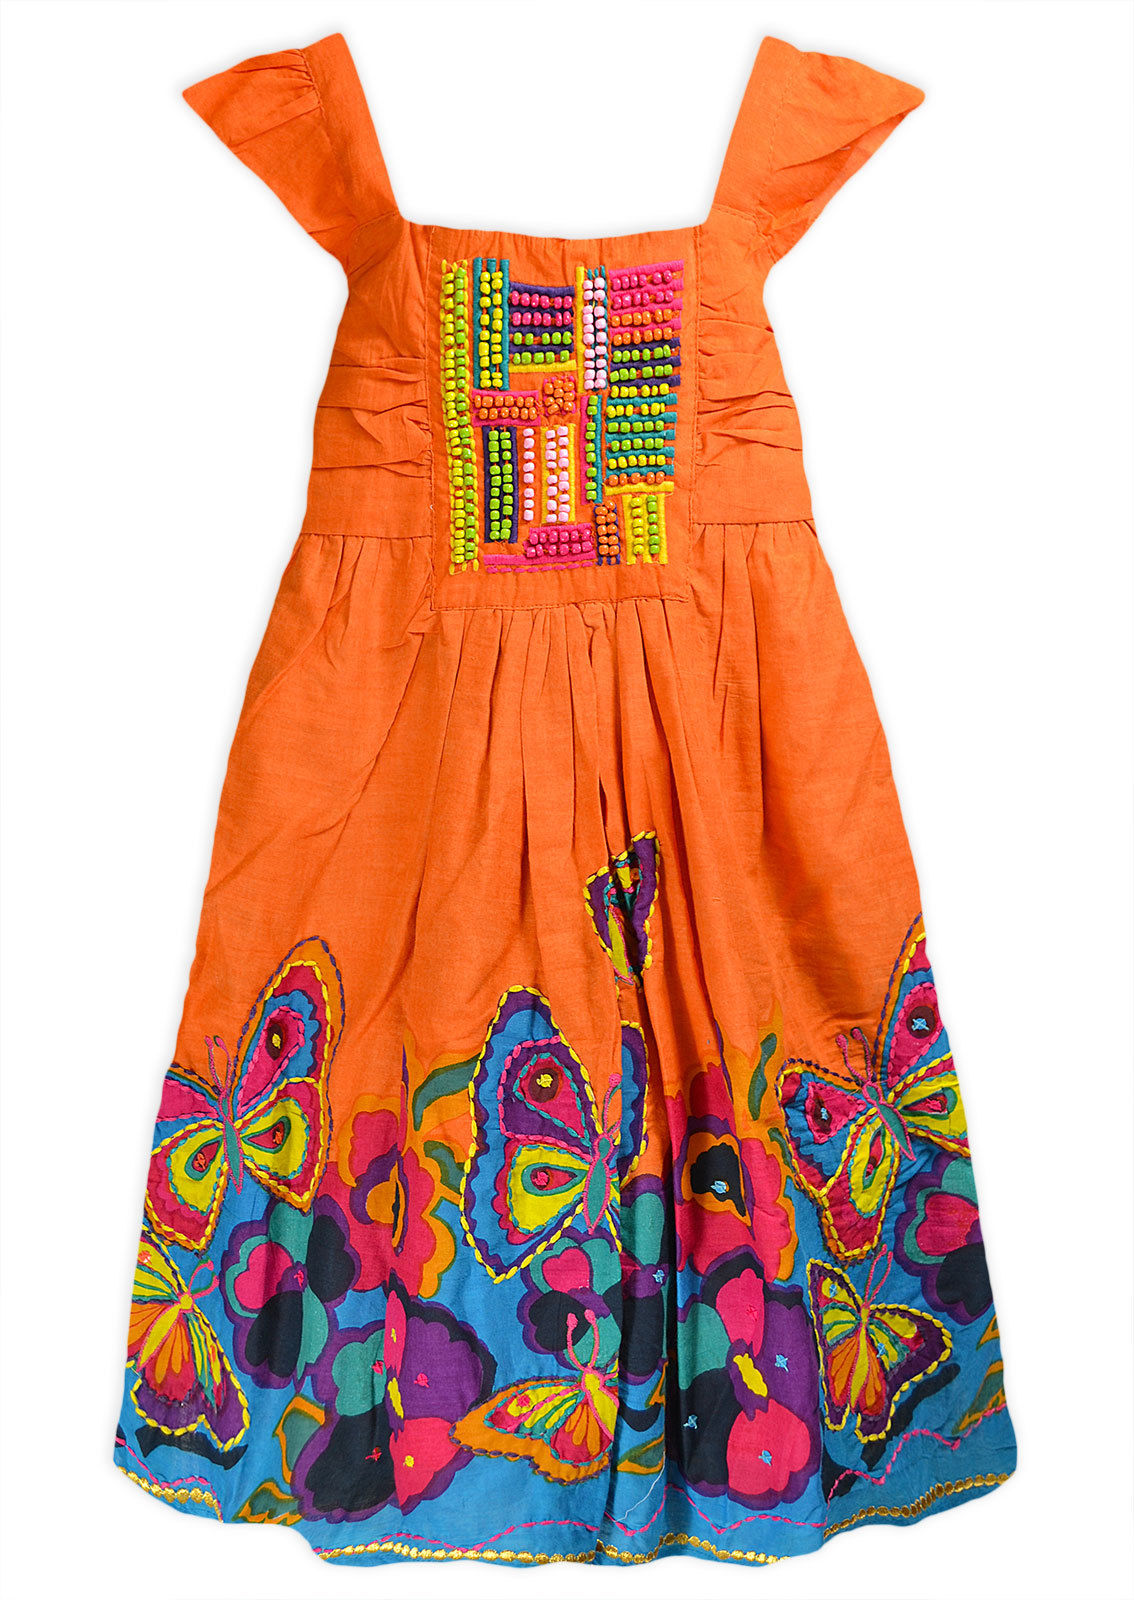 Girls Floral Summer Dress Kids Cotton Beaded Party Sun